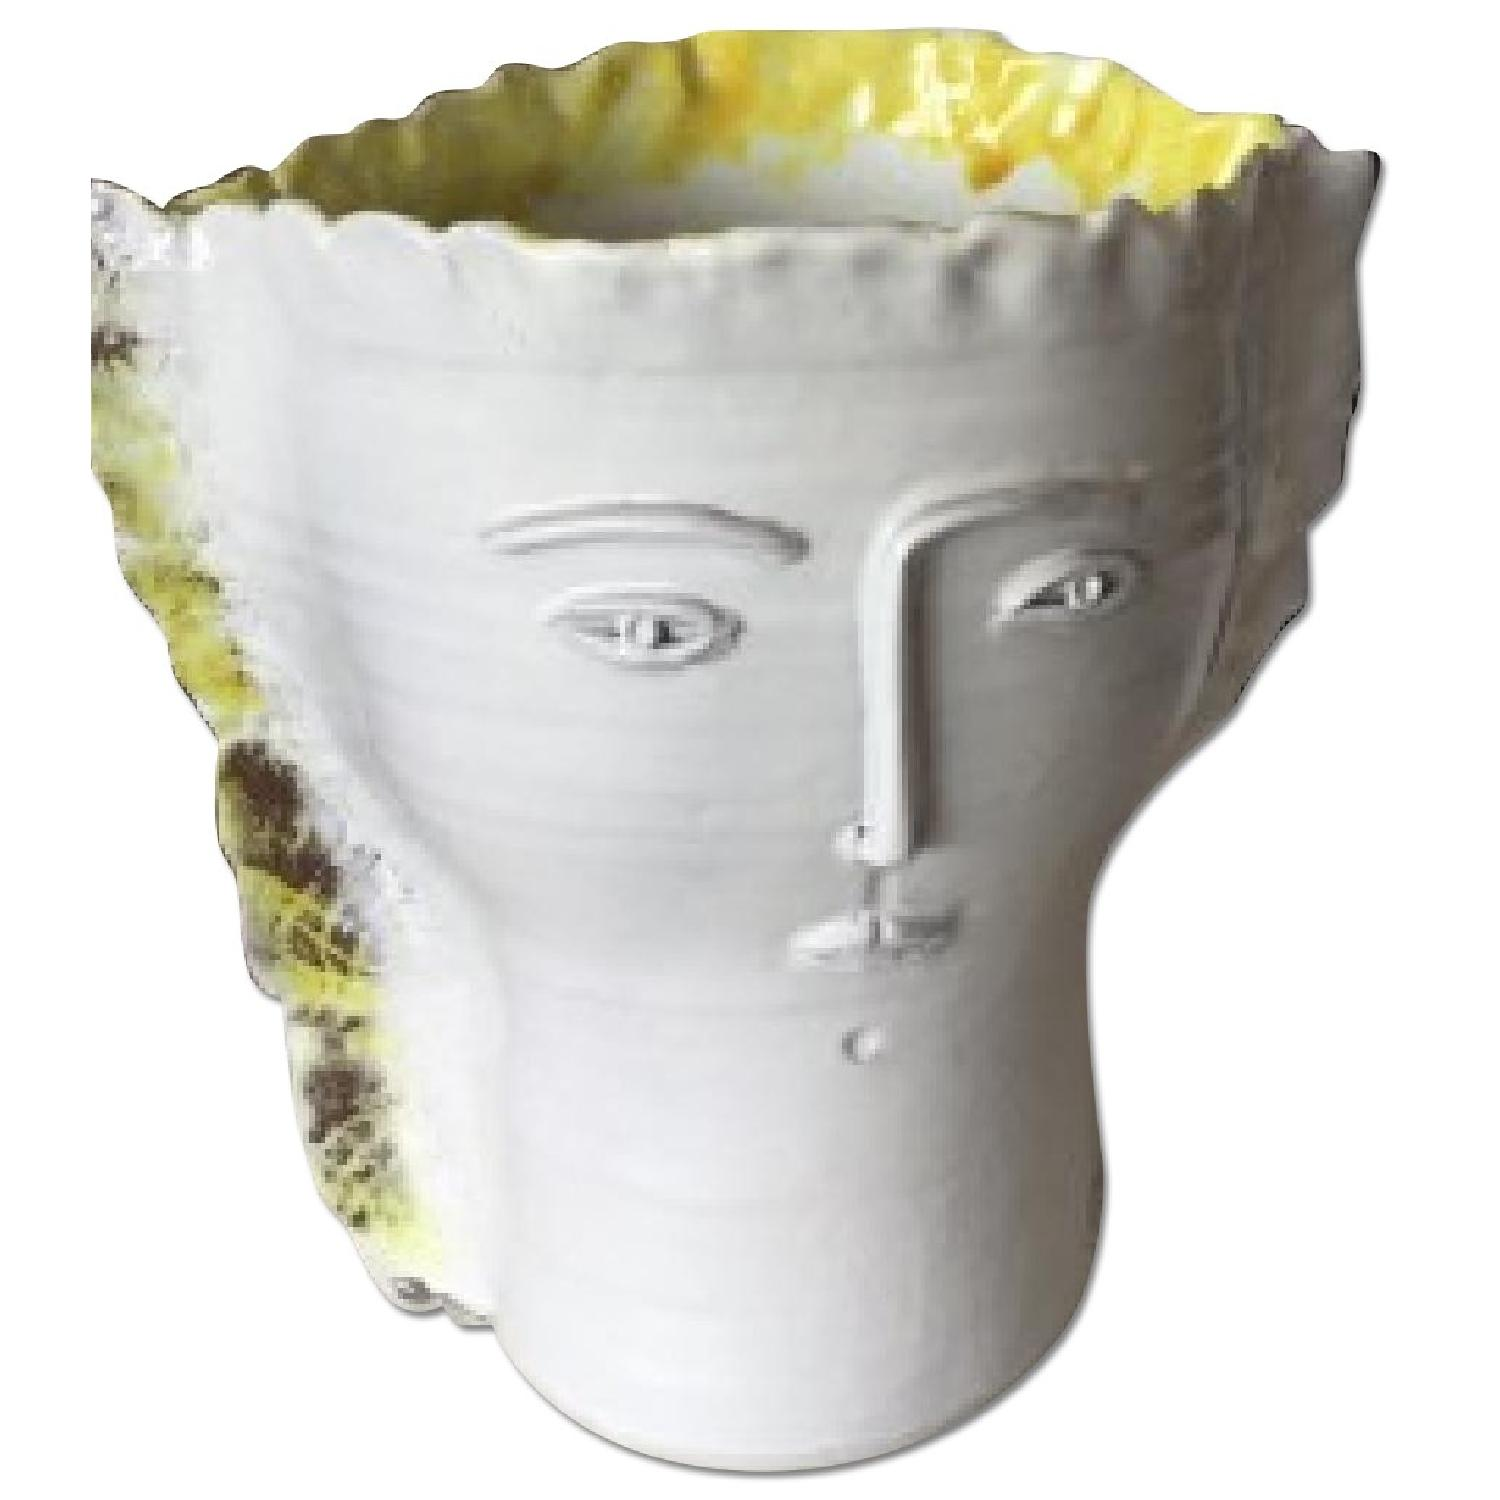 60's Cloutier Collectable Ceramic Vase - image-0